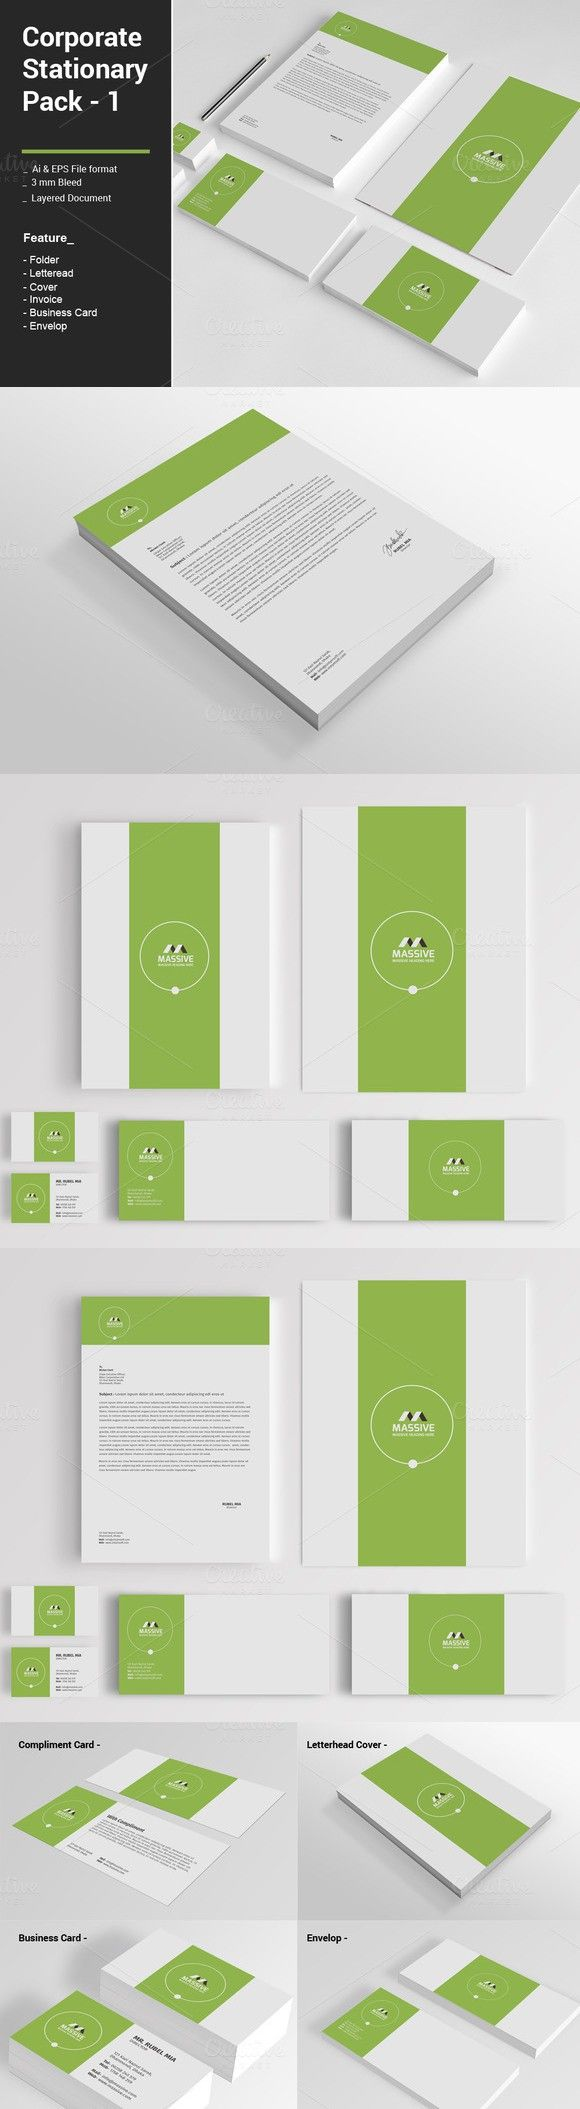 Corporate Stationary Pack -1